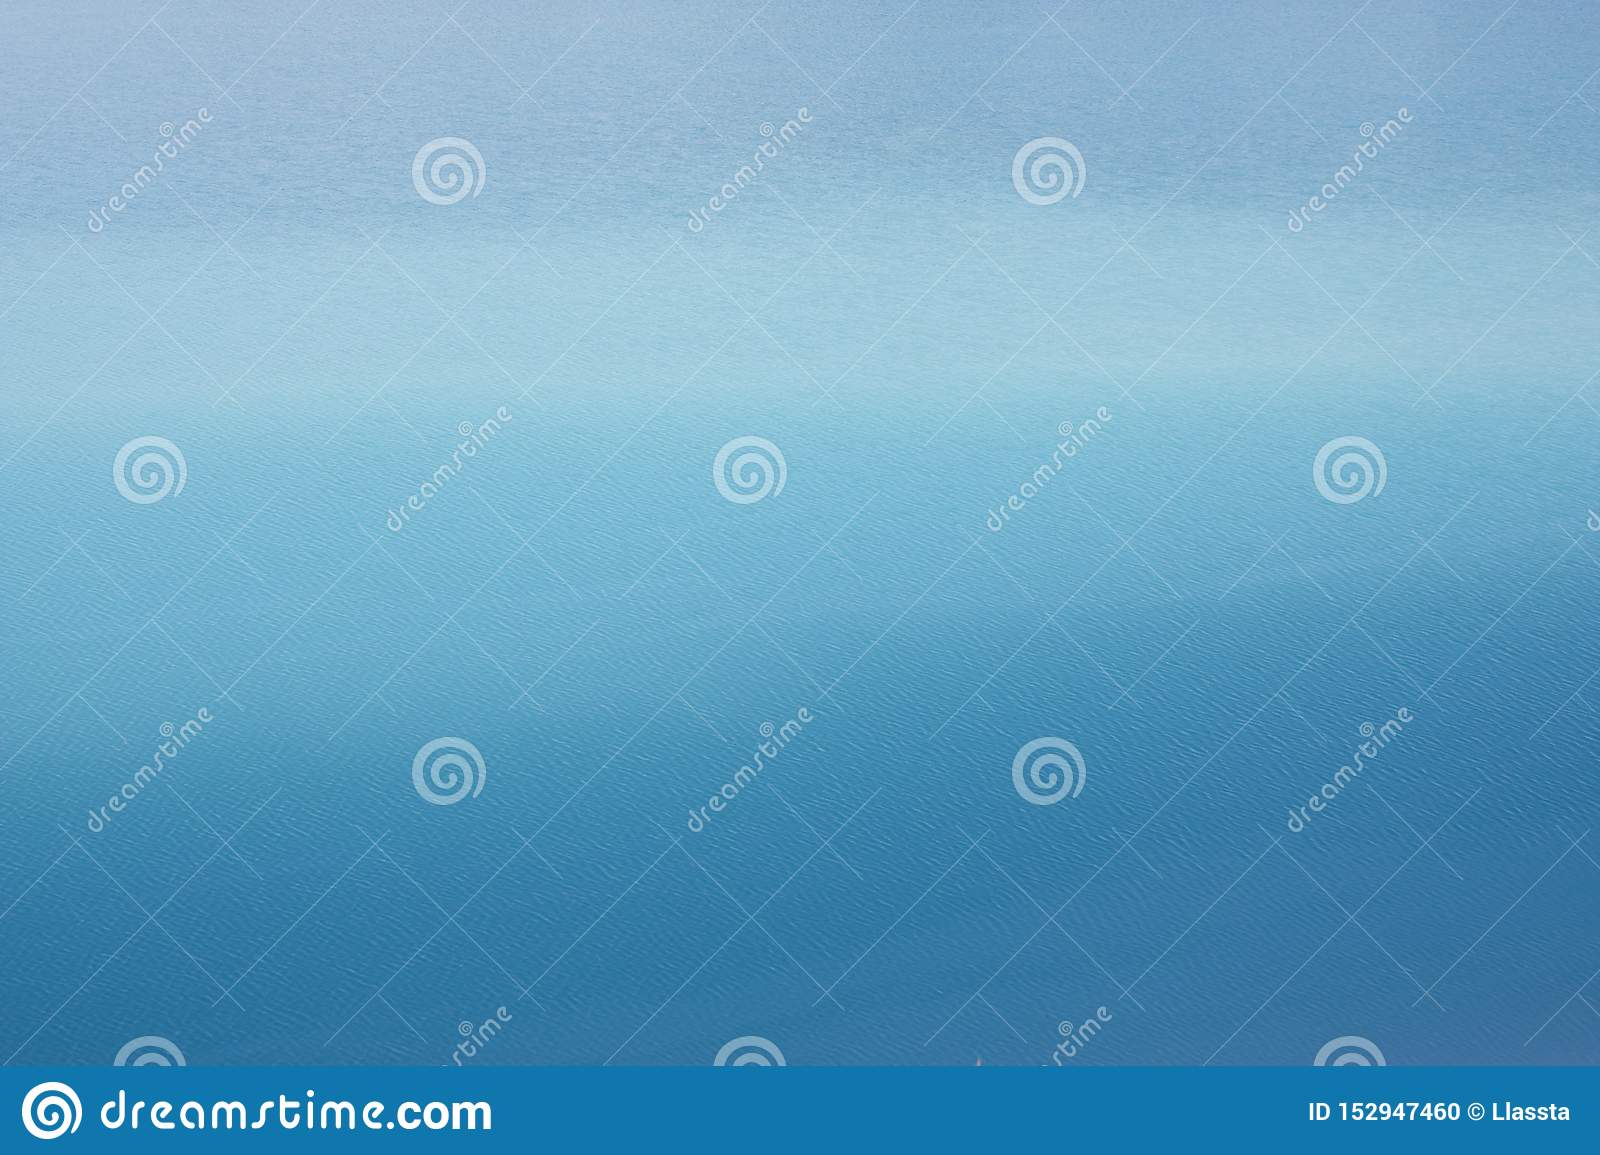 Background azure blue expanse of the sea with small ripples on the water